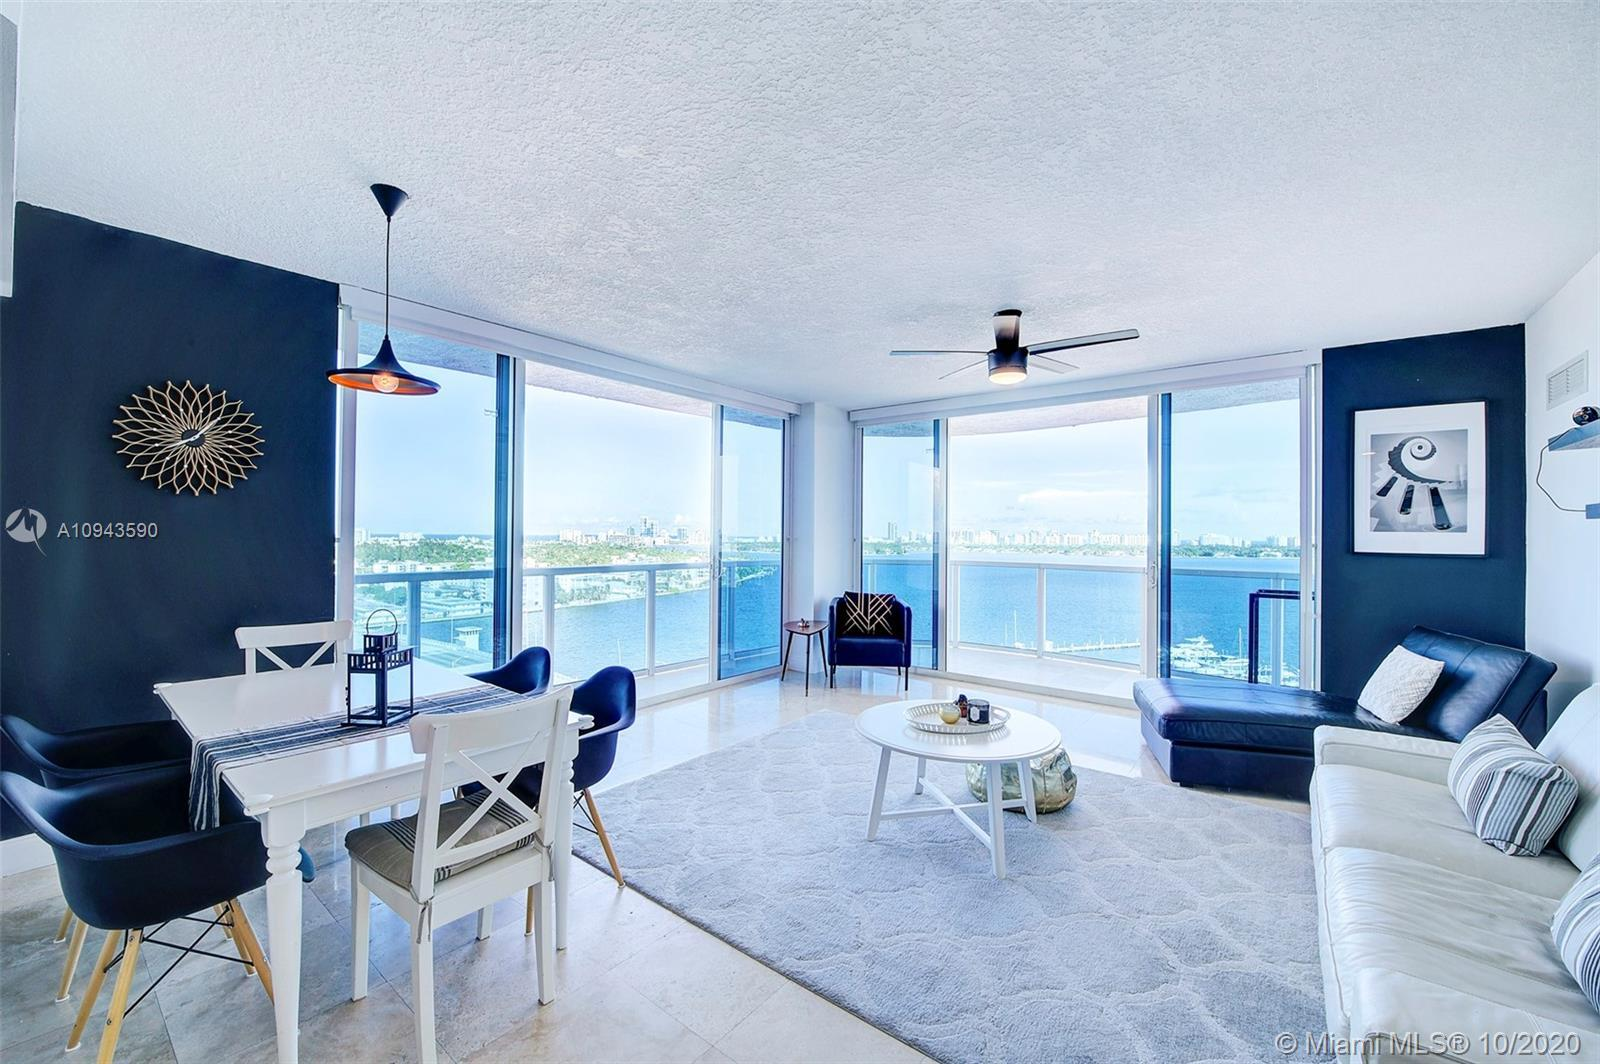 One of the best views in Miami! 180° panorama of the Bay, Miami Beach and Downtown skyline. Watch th